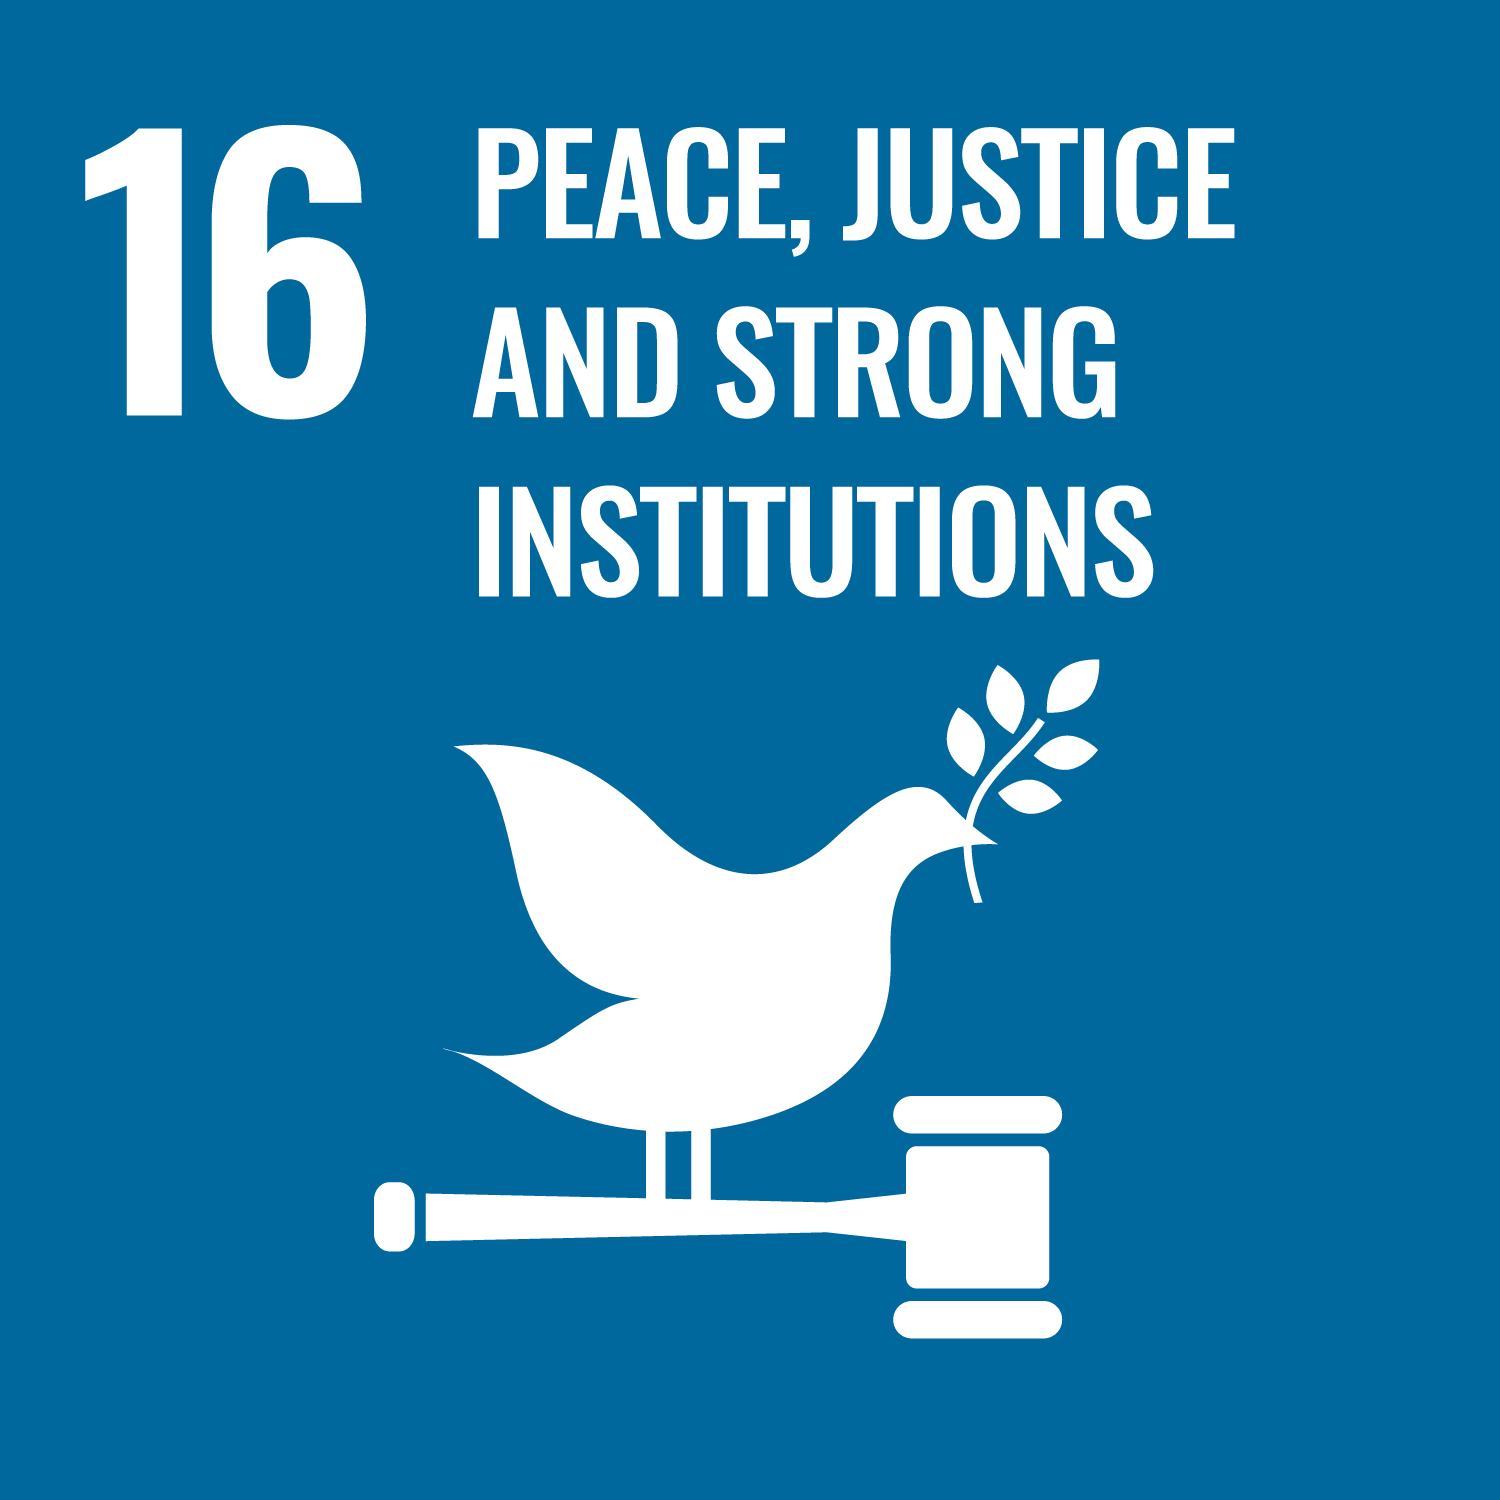 Peace, Justice and strong Institutions Image